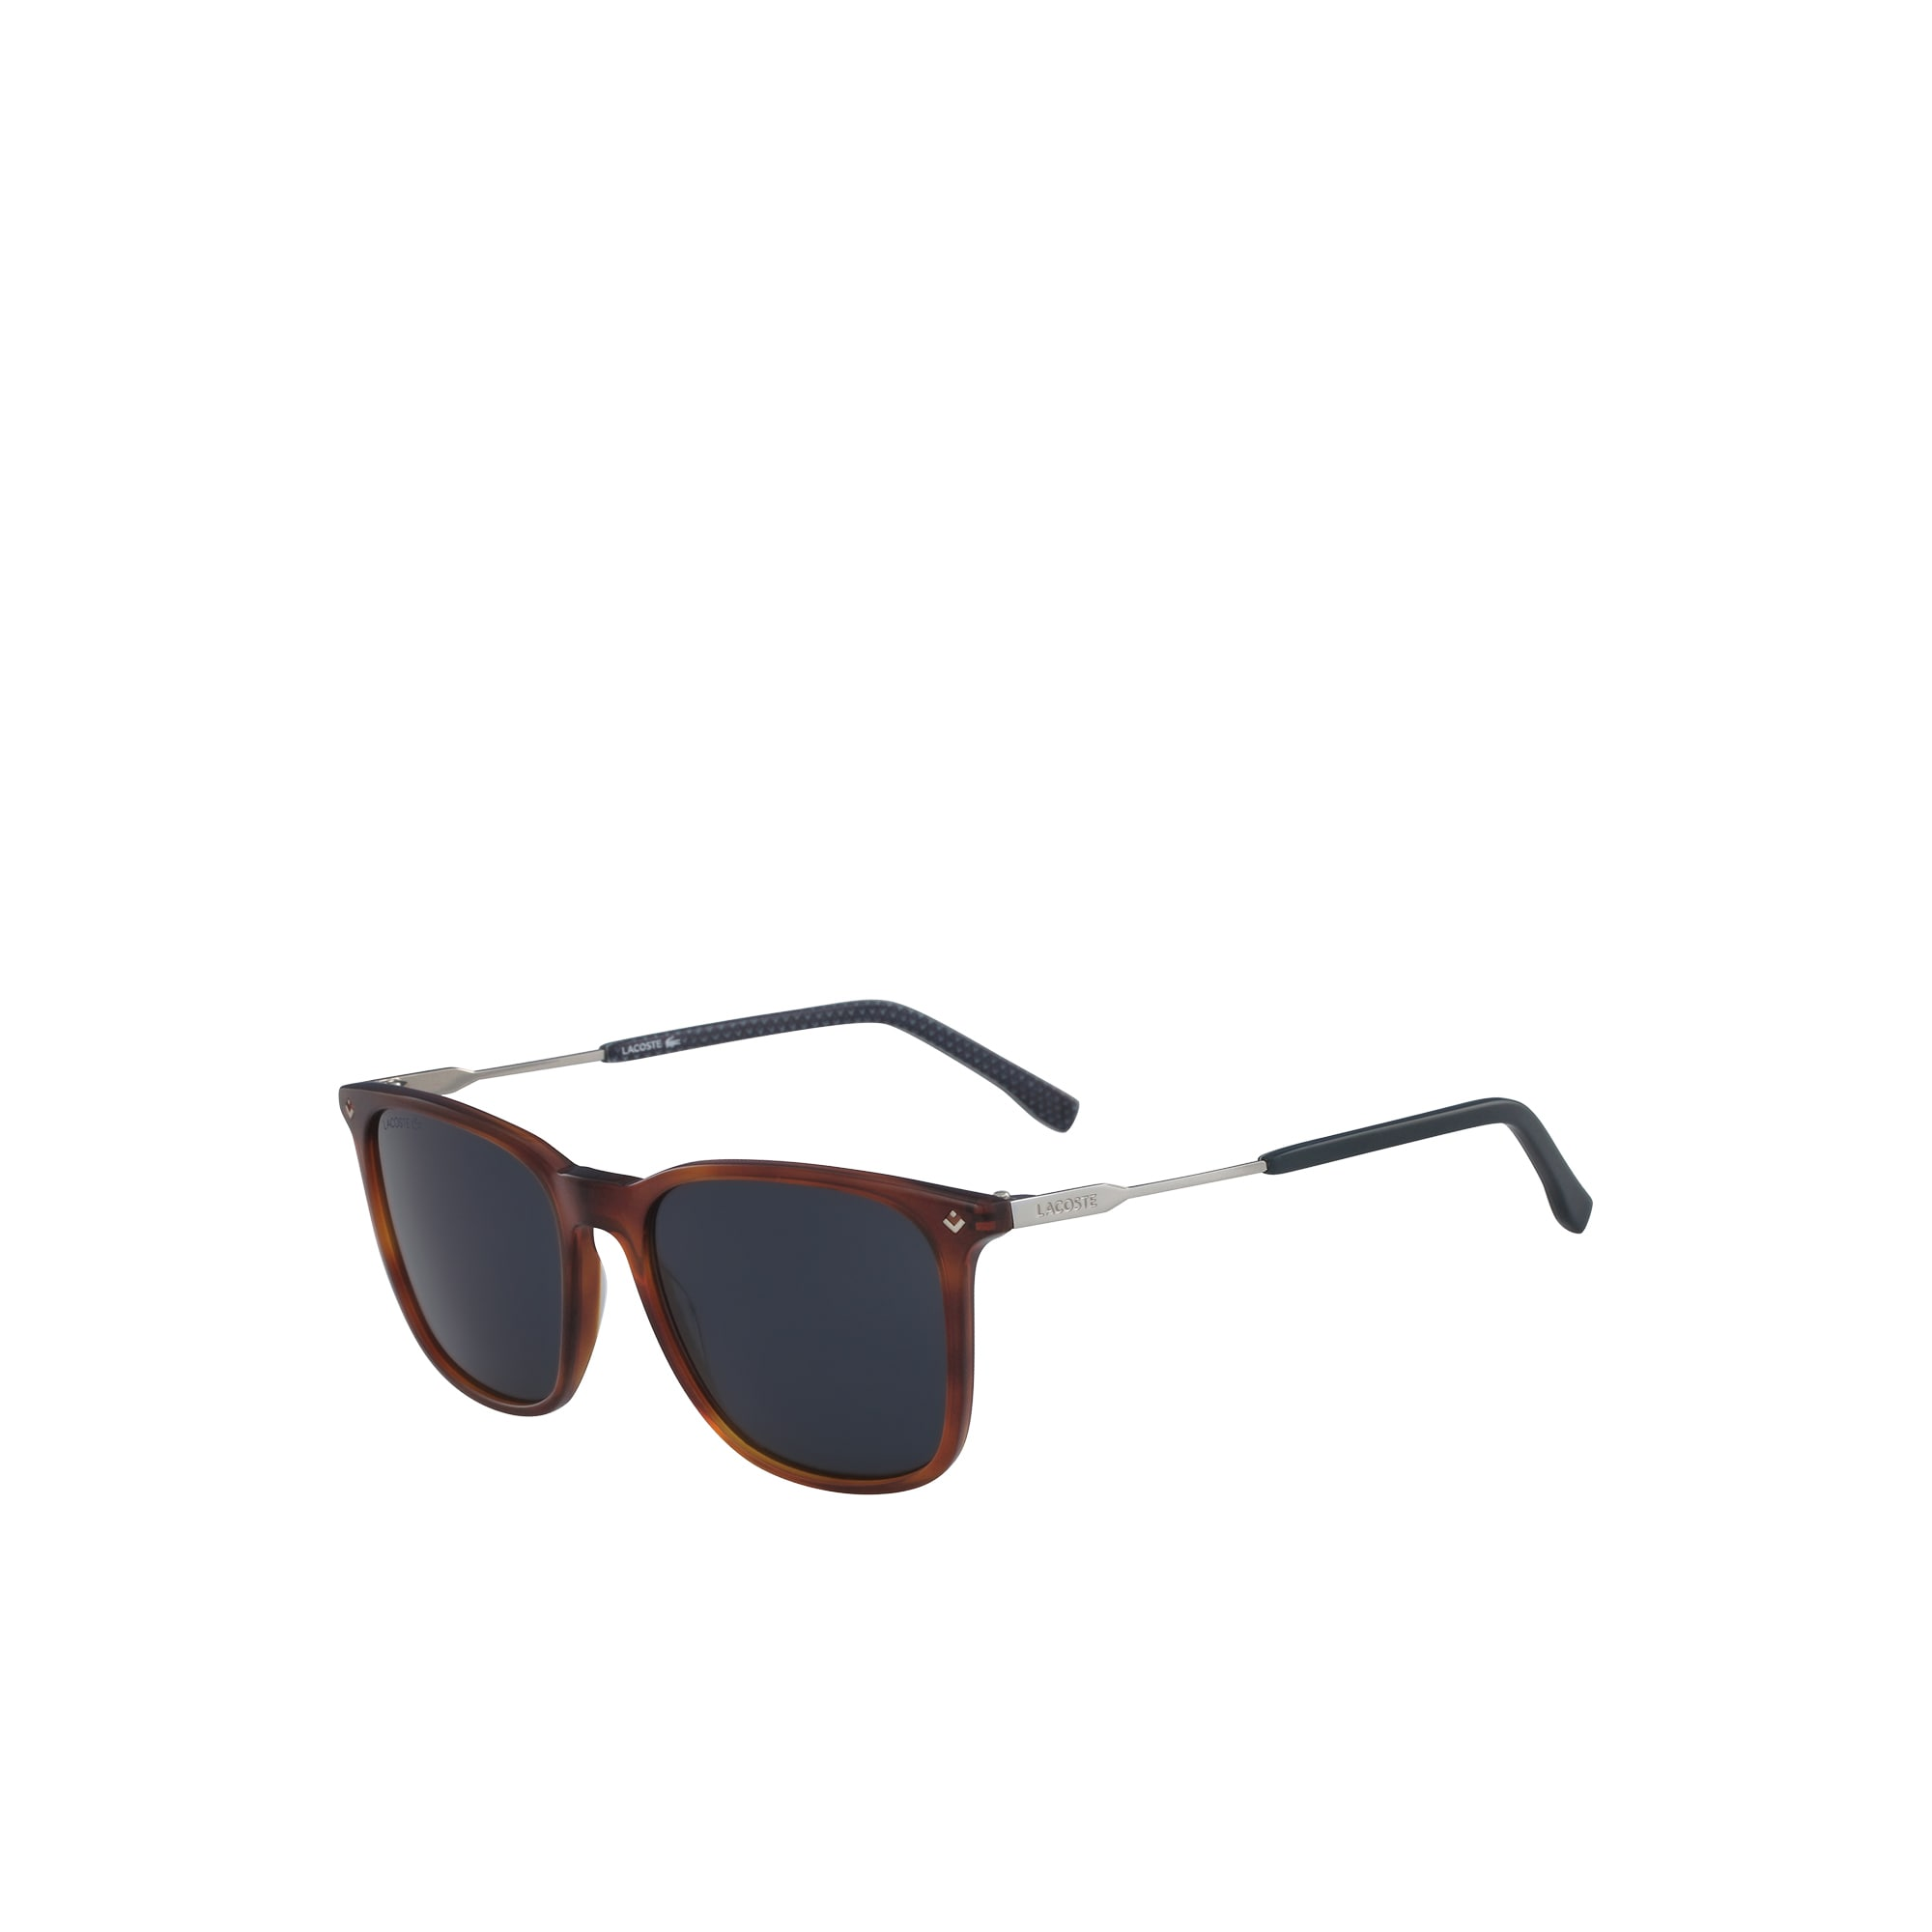 Men's Petit Piqué Sunglasses with Acetate/Metal Frames